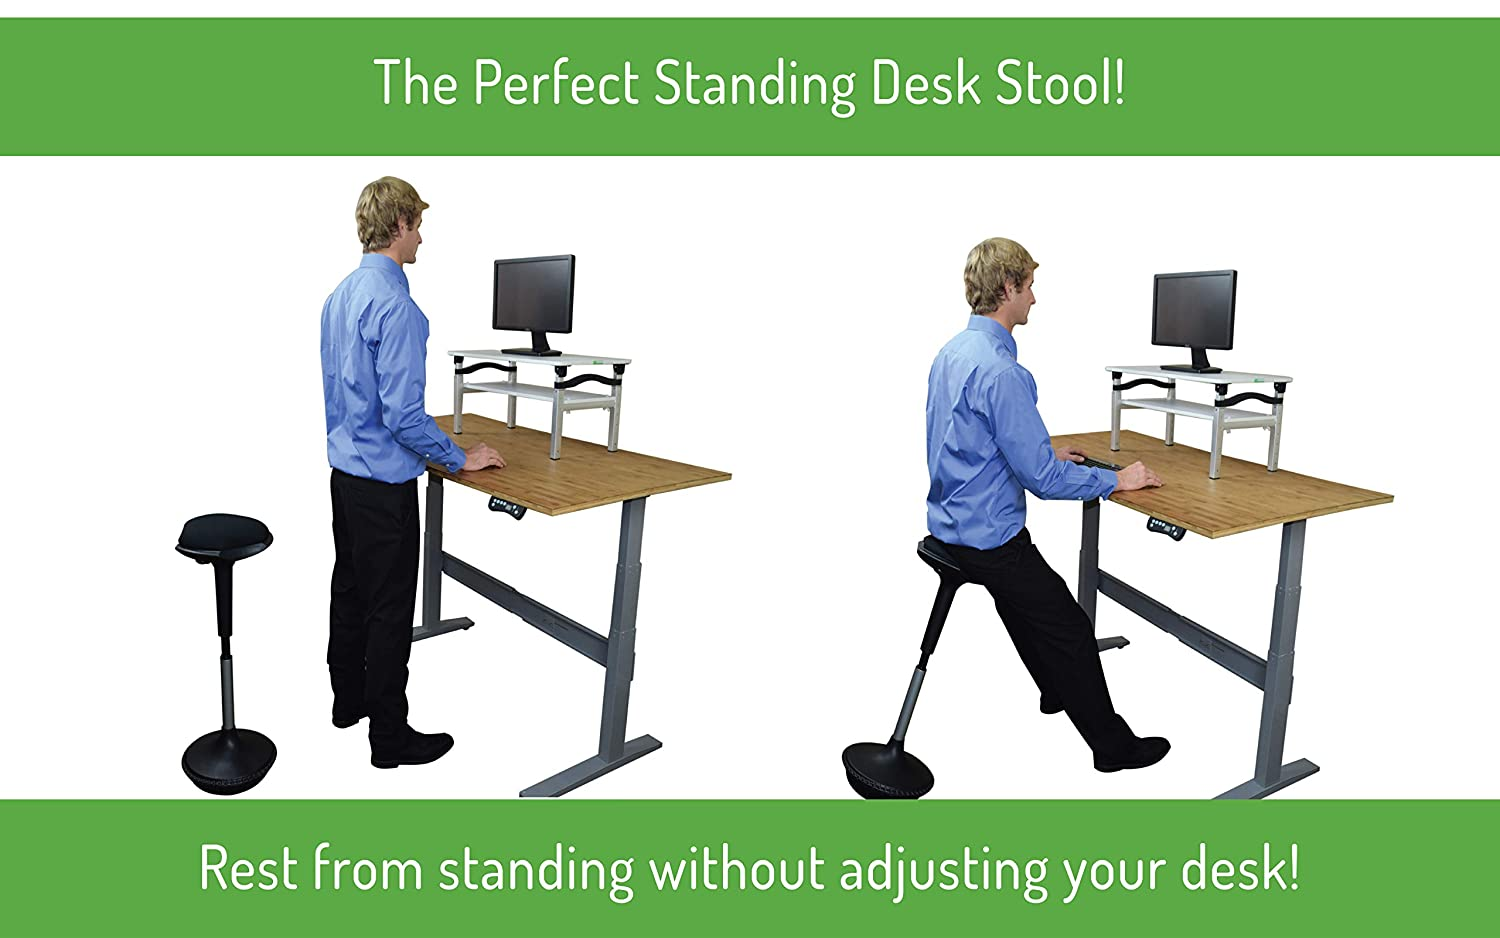 New Wobble Stool Adjustable Height Active Sitting Balance Perching